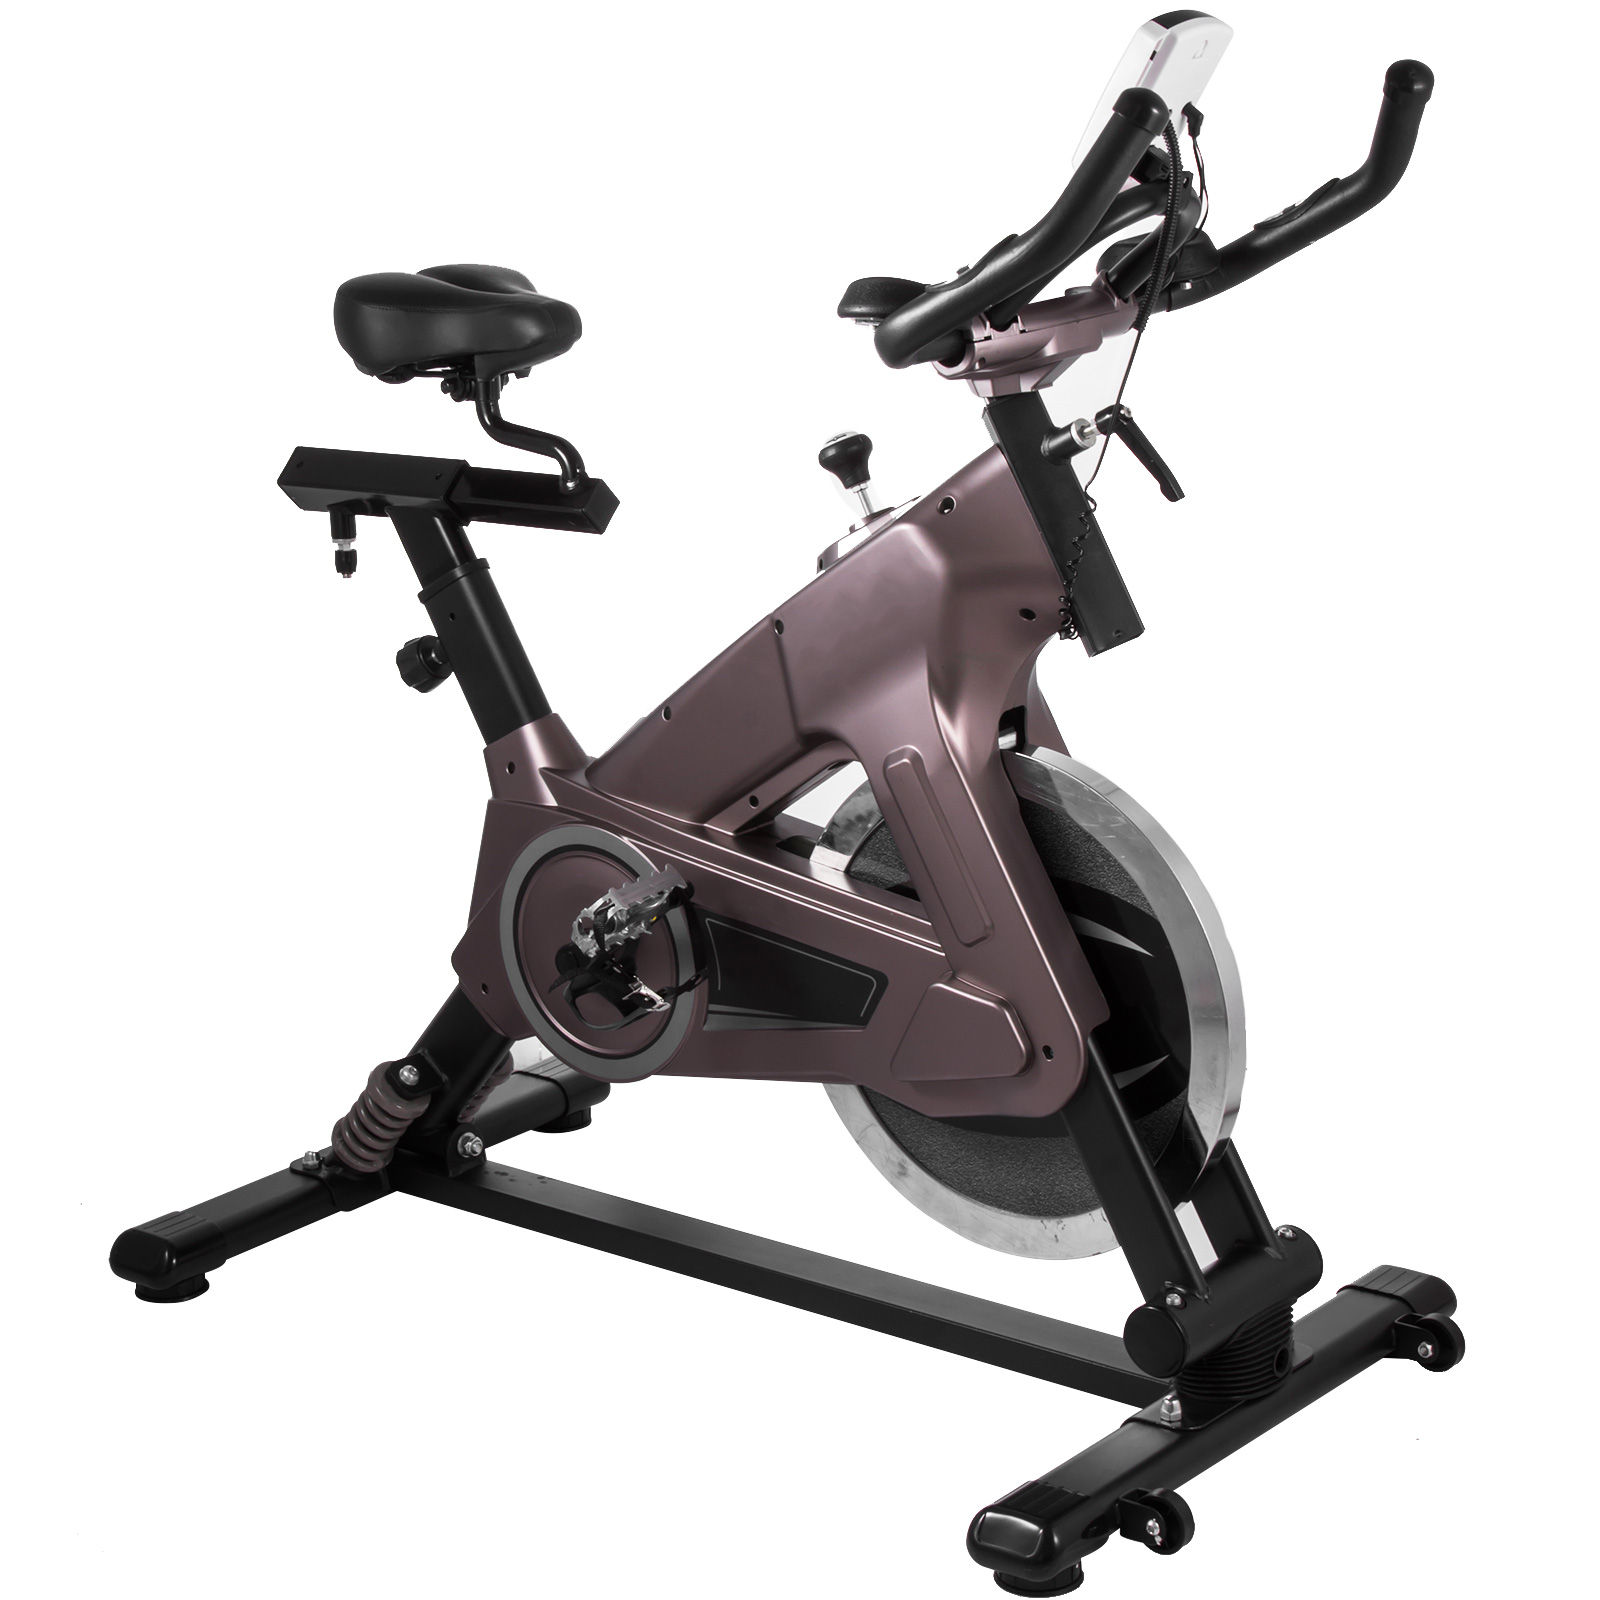 Multi-style-Magnetic-Exercise-Bike-office-Bicycle-under-Desk-Fitness-Cardio miniature 153